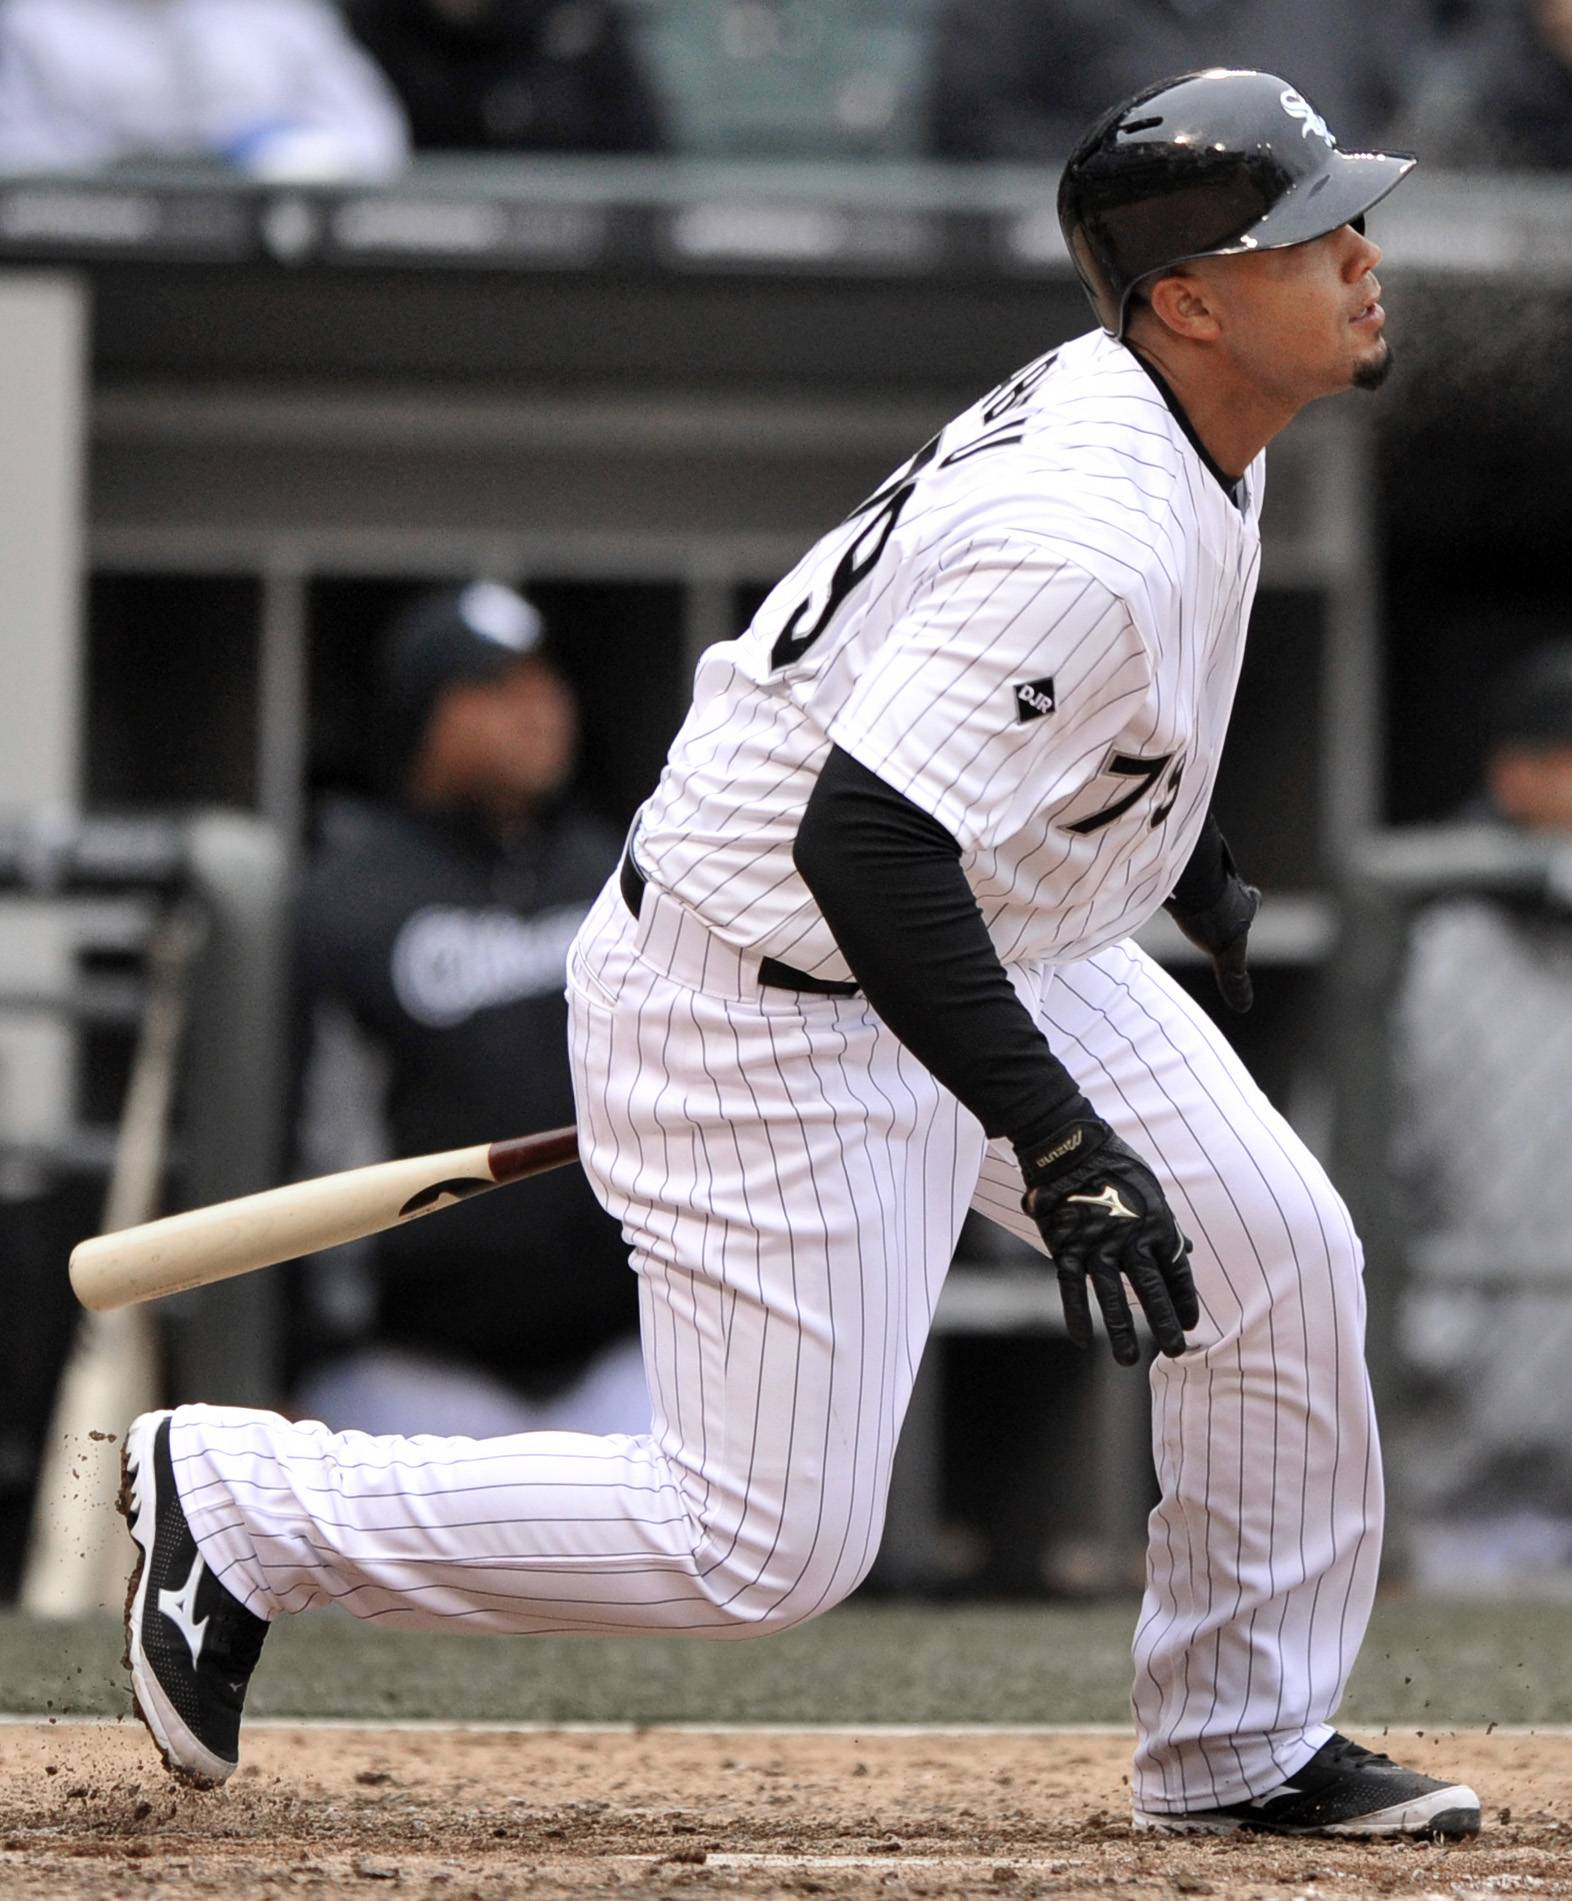 Chicago White Sox's Jose Abreu watches his three-run triple during the sixth inning of a baseball game against the Minnesota Twins in Chicago, Thursday, April 3, 2014.